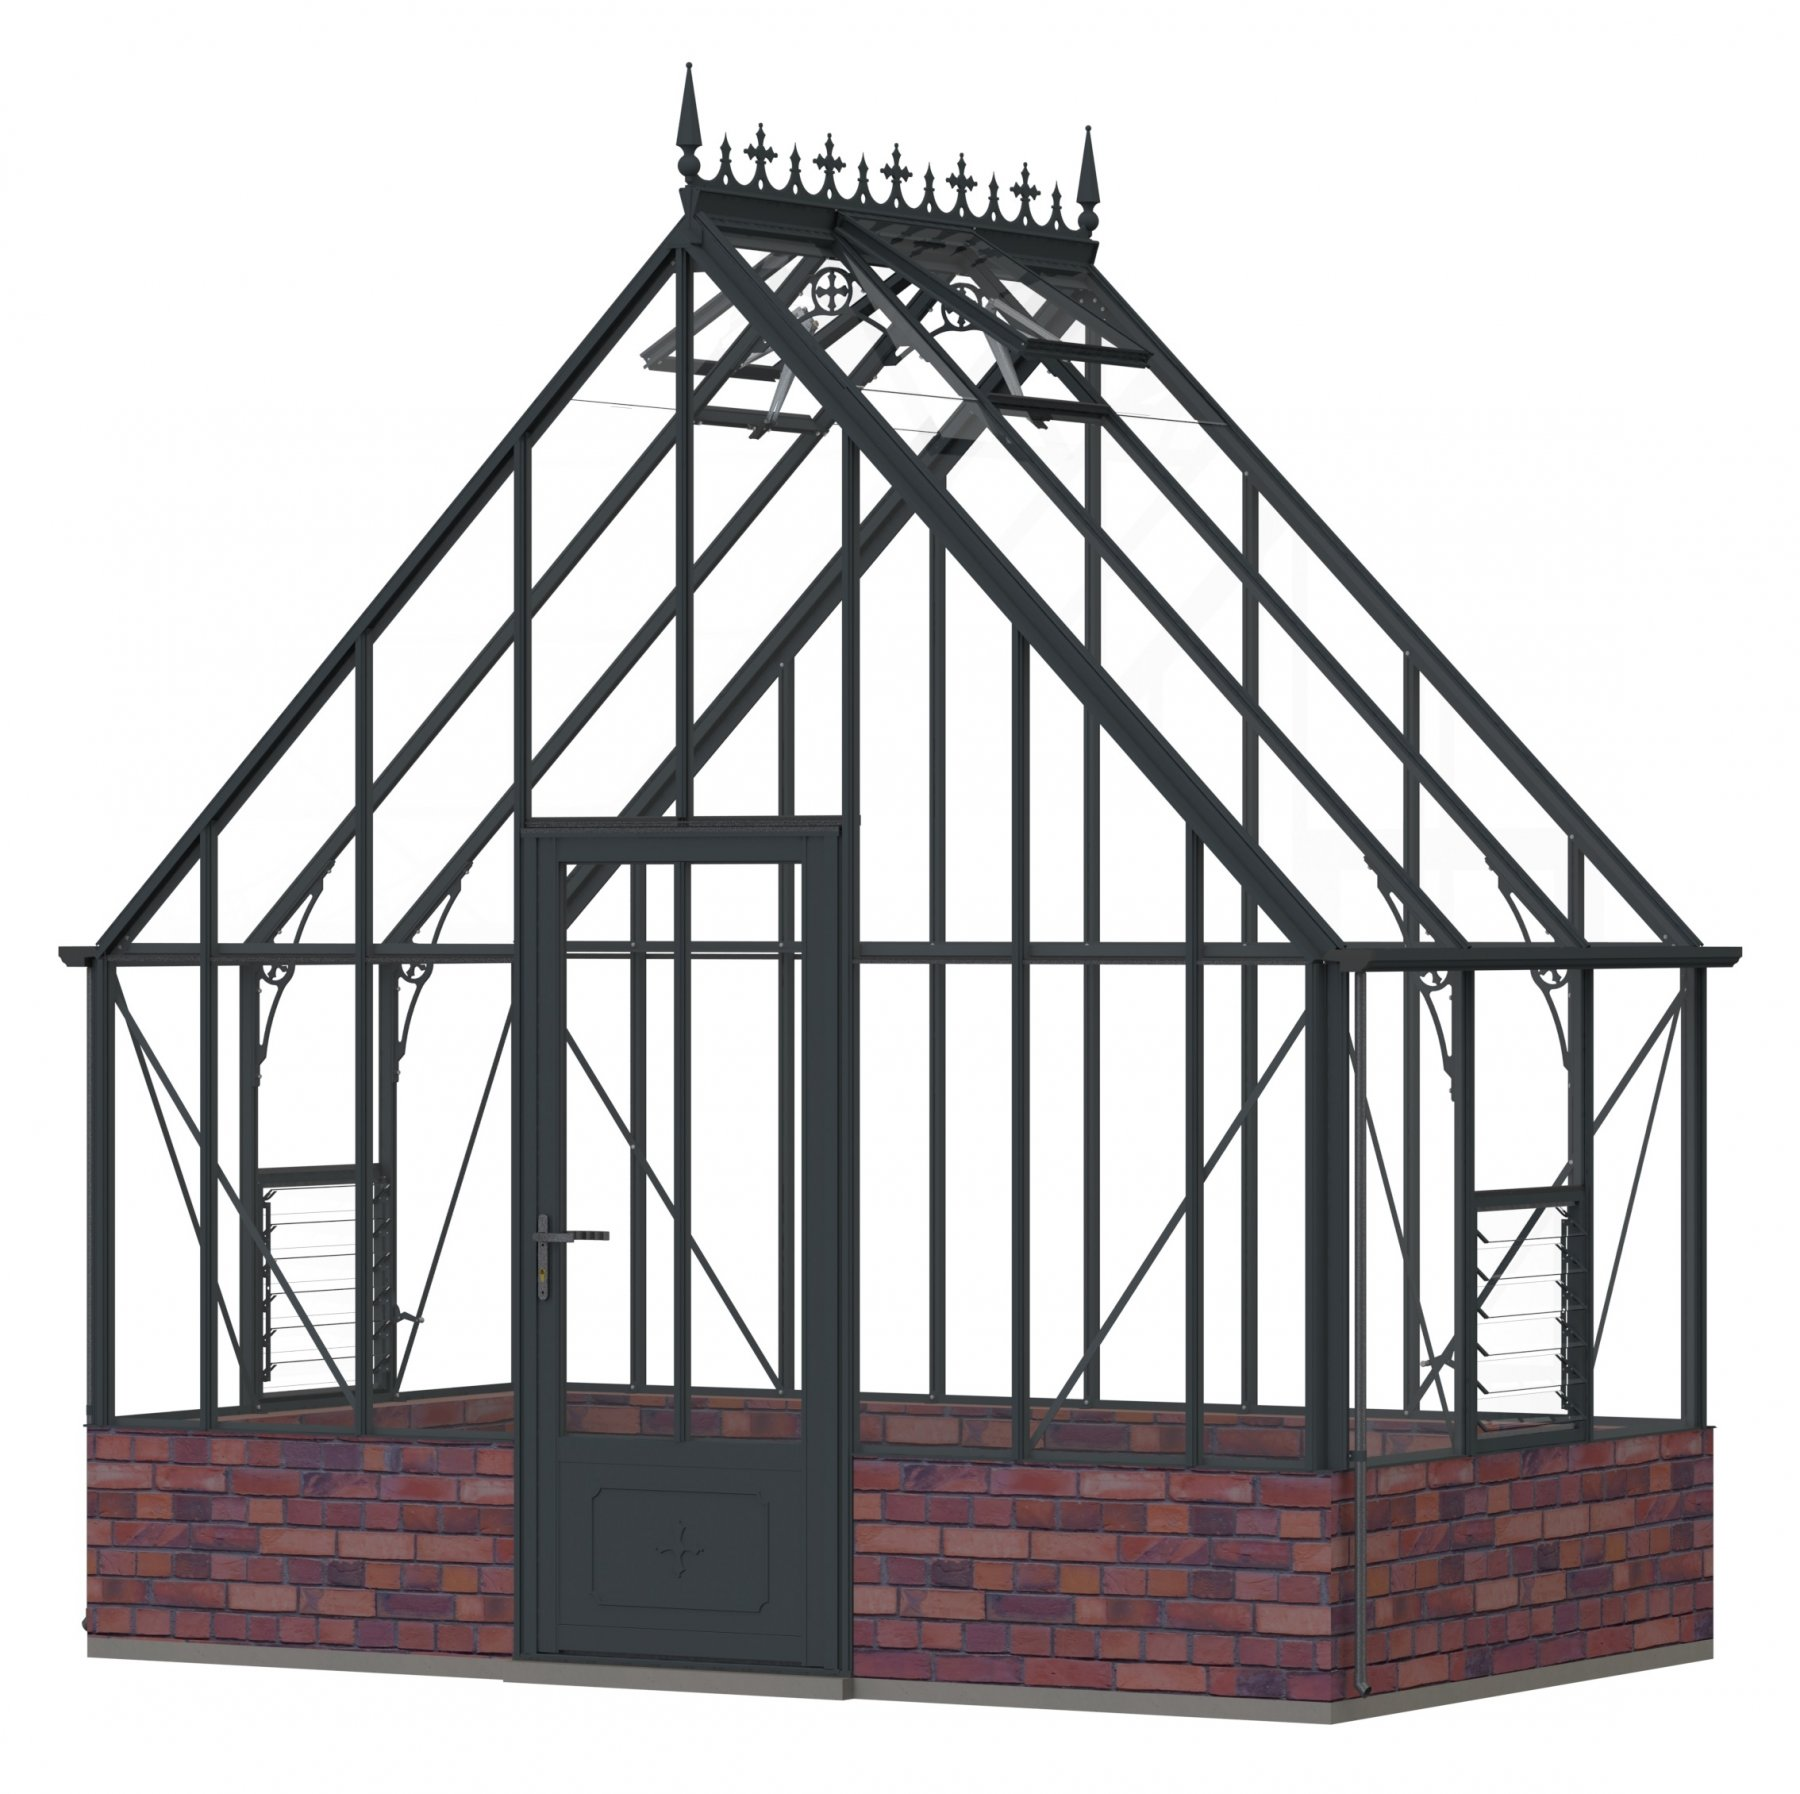 Robinsons Roedean Dwarf Wall Anthracite 11'7